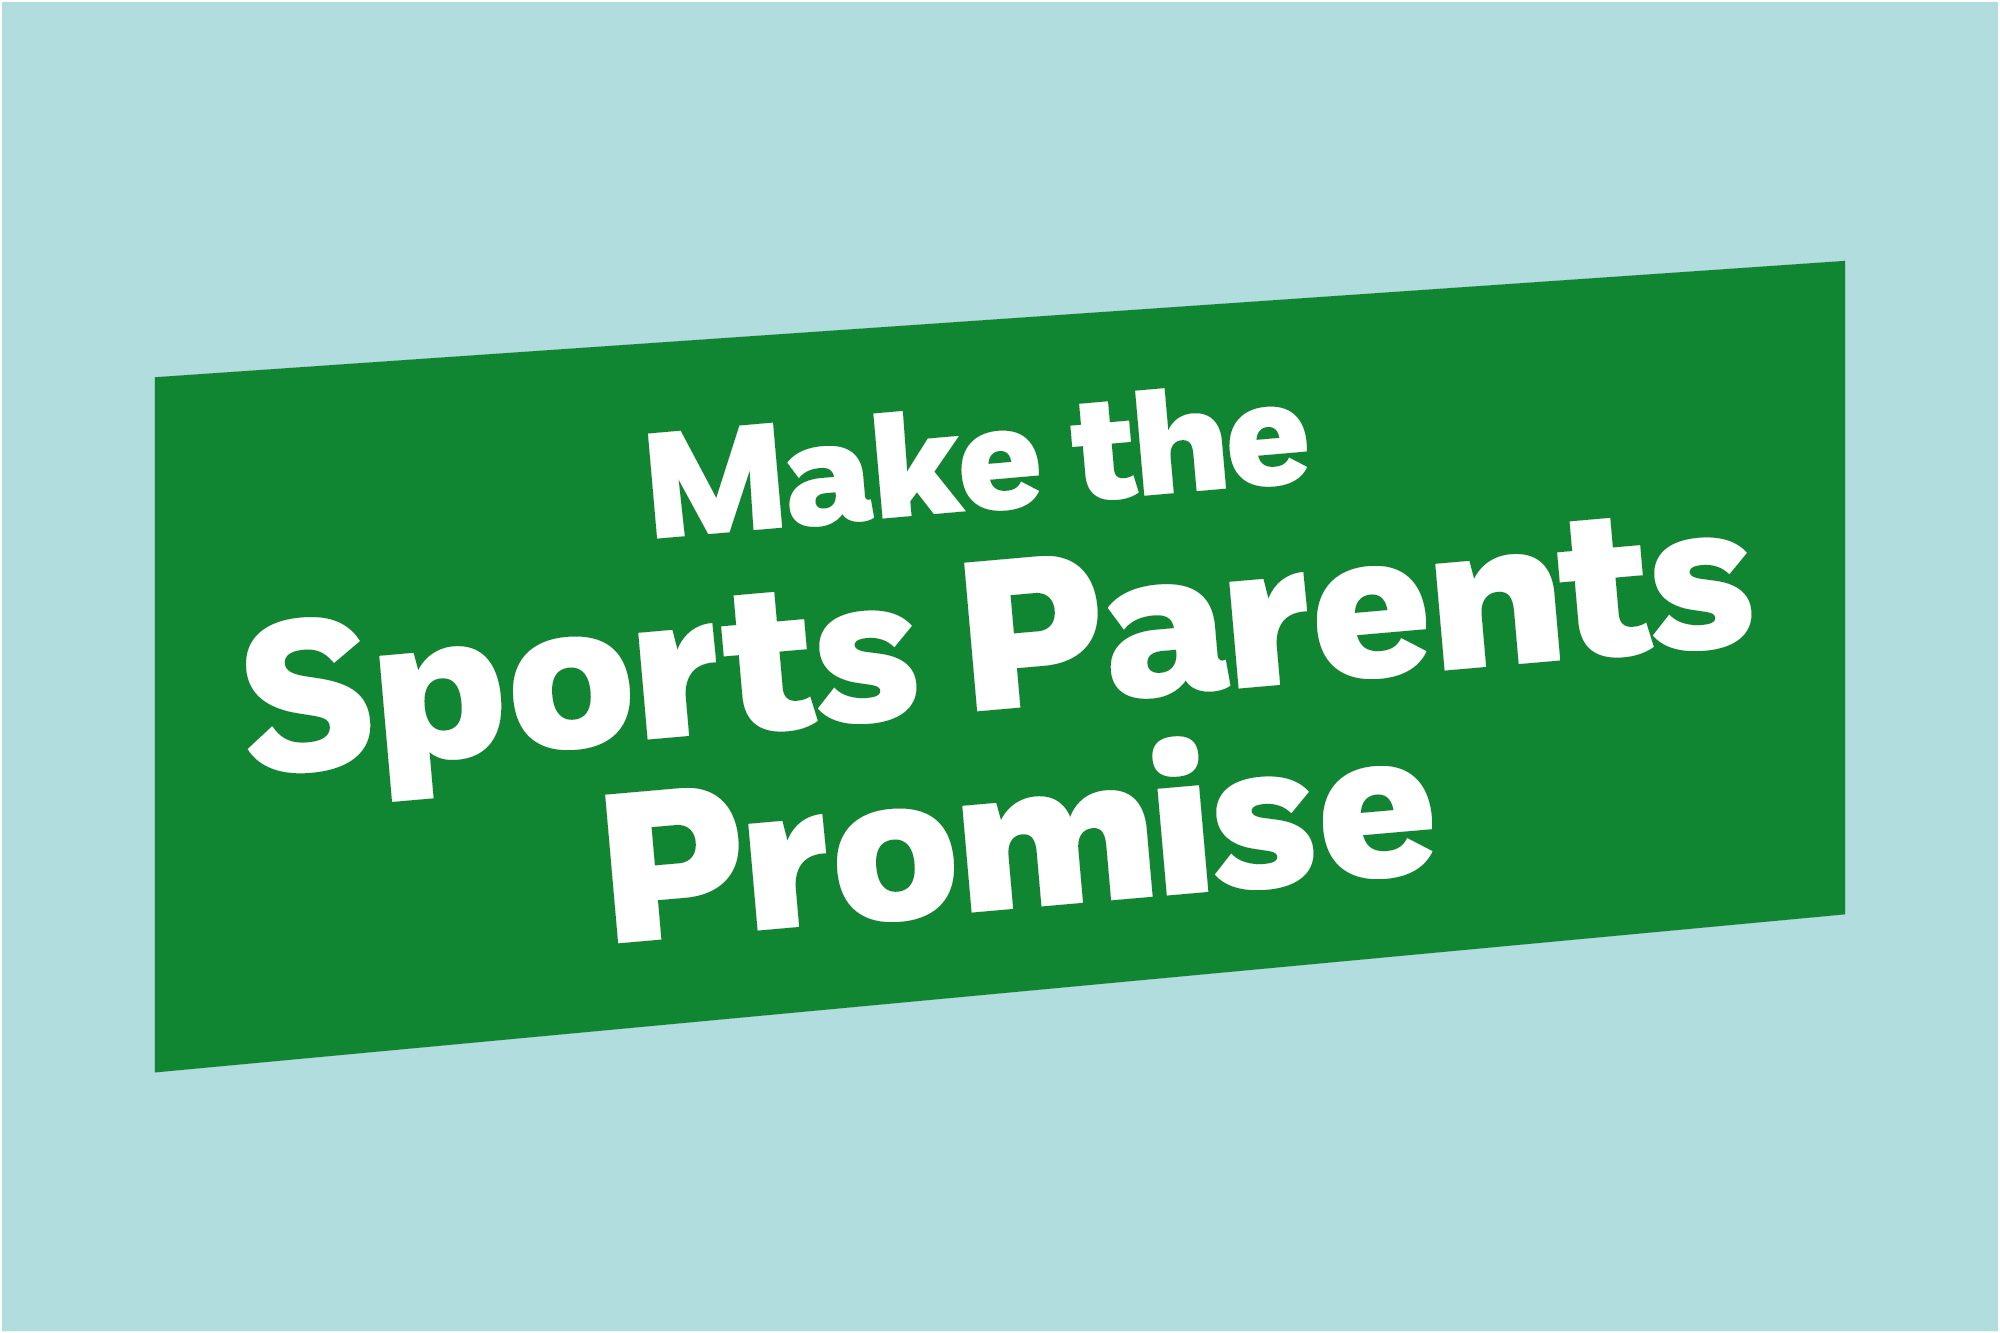 Make the Sports Parents Promise